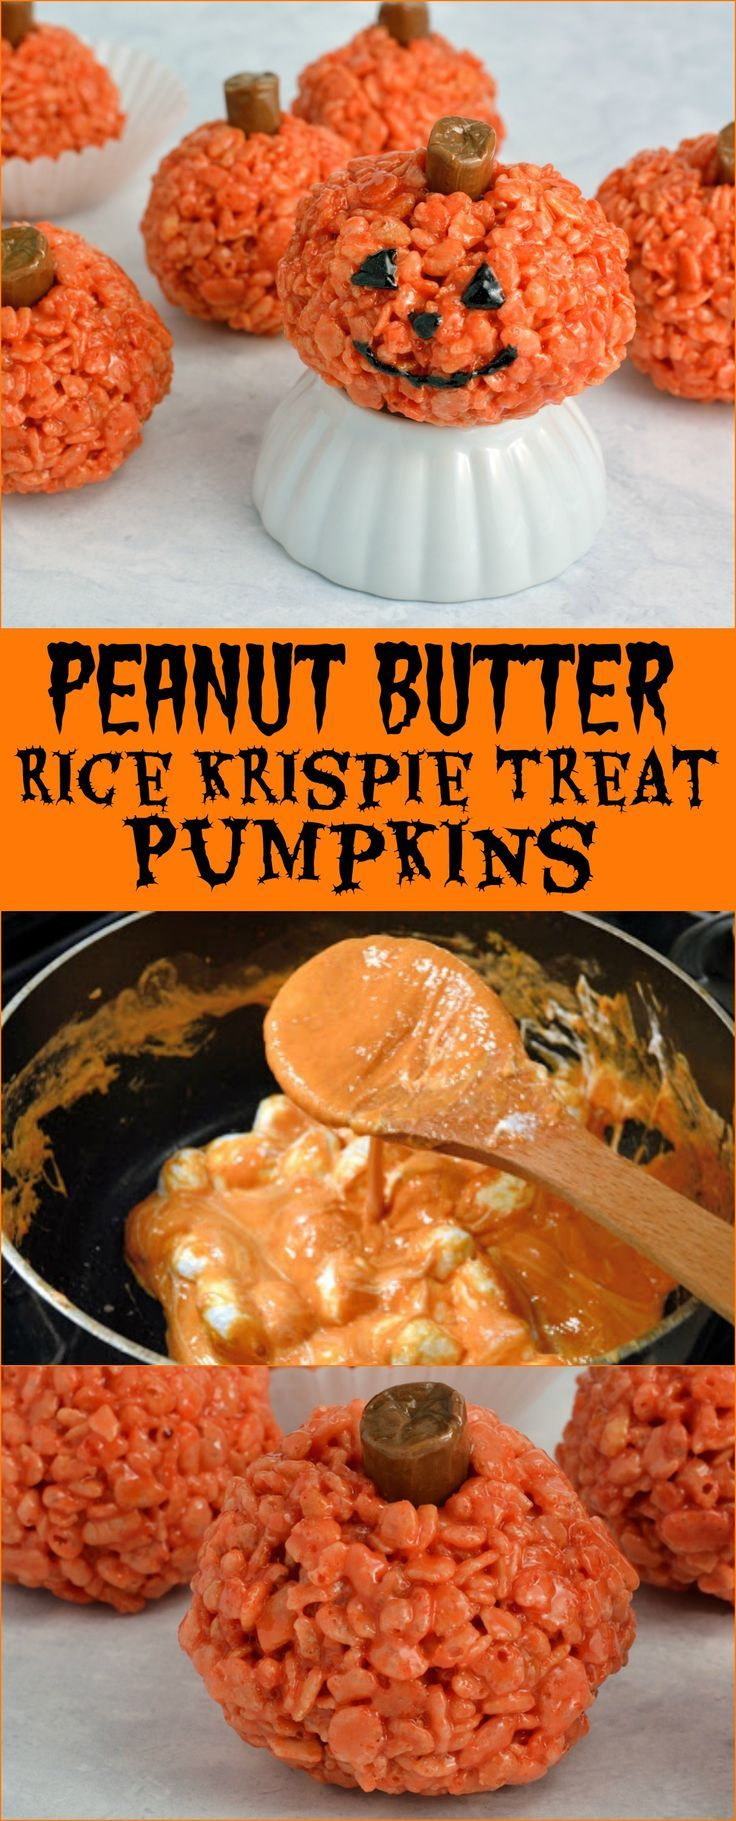 Peanut Butter Rice Krispie Treat Pumpkin Recipe is perfect for any fall gathering or cute Halloween treat. Ready in only 20 minutes, everyone will love them!